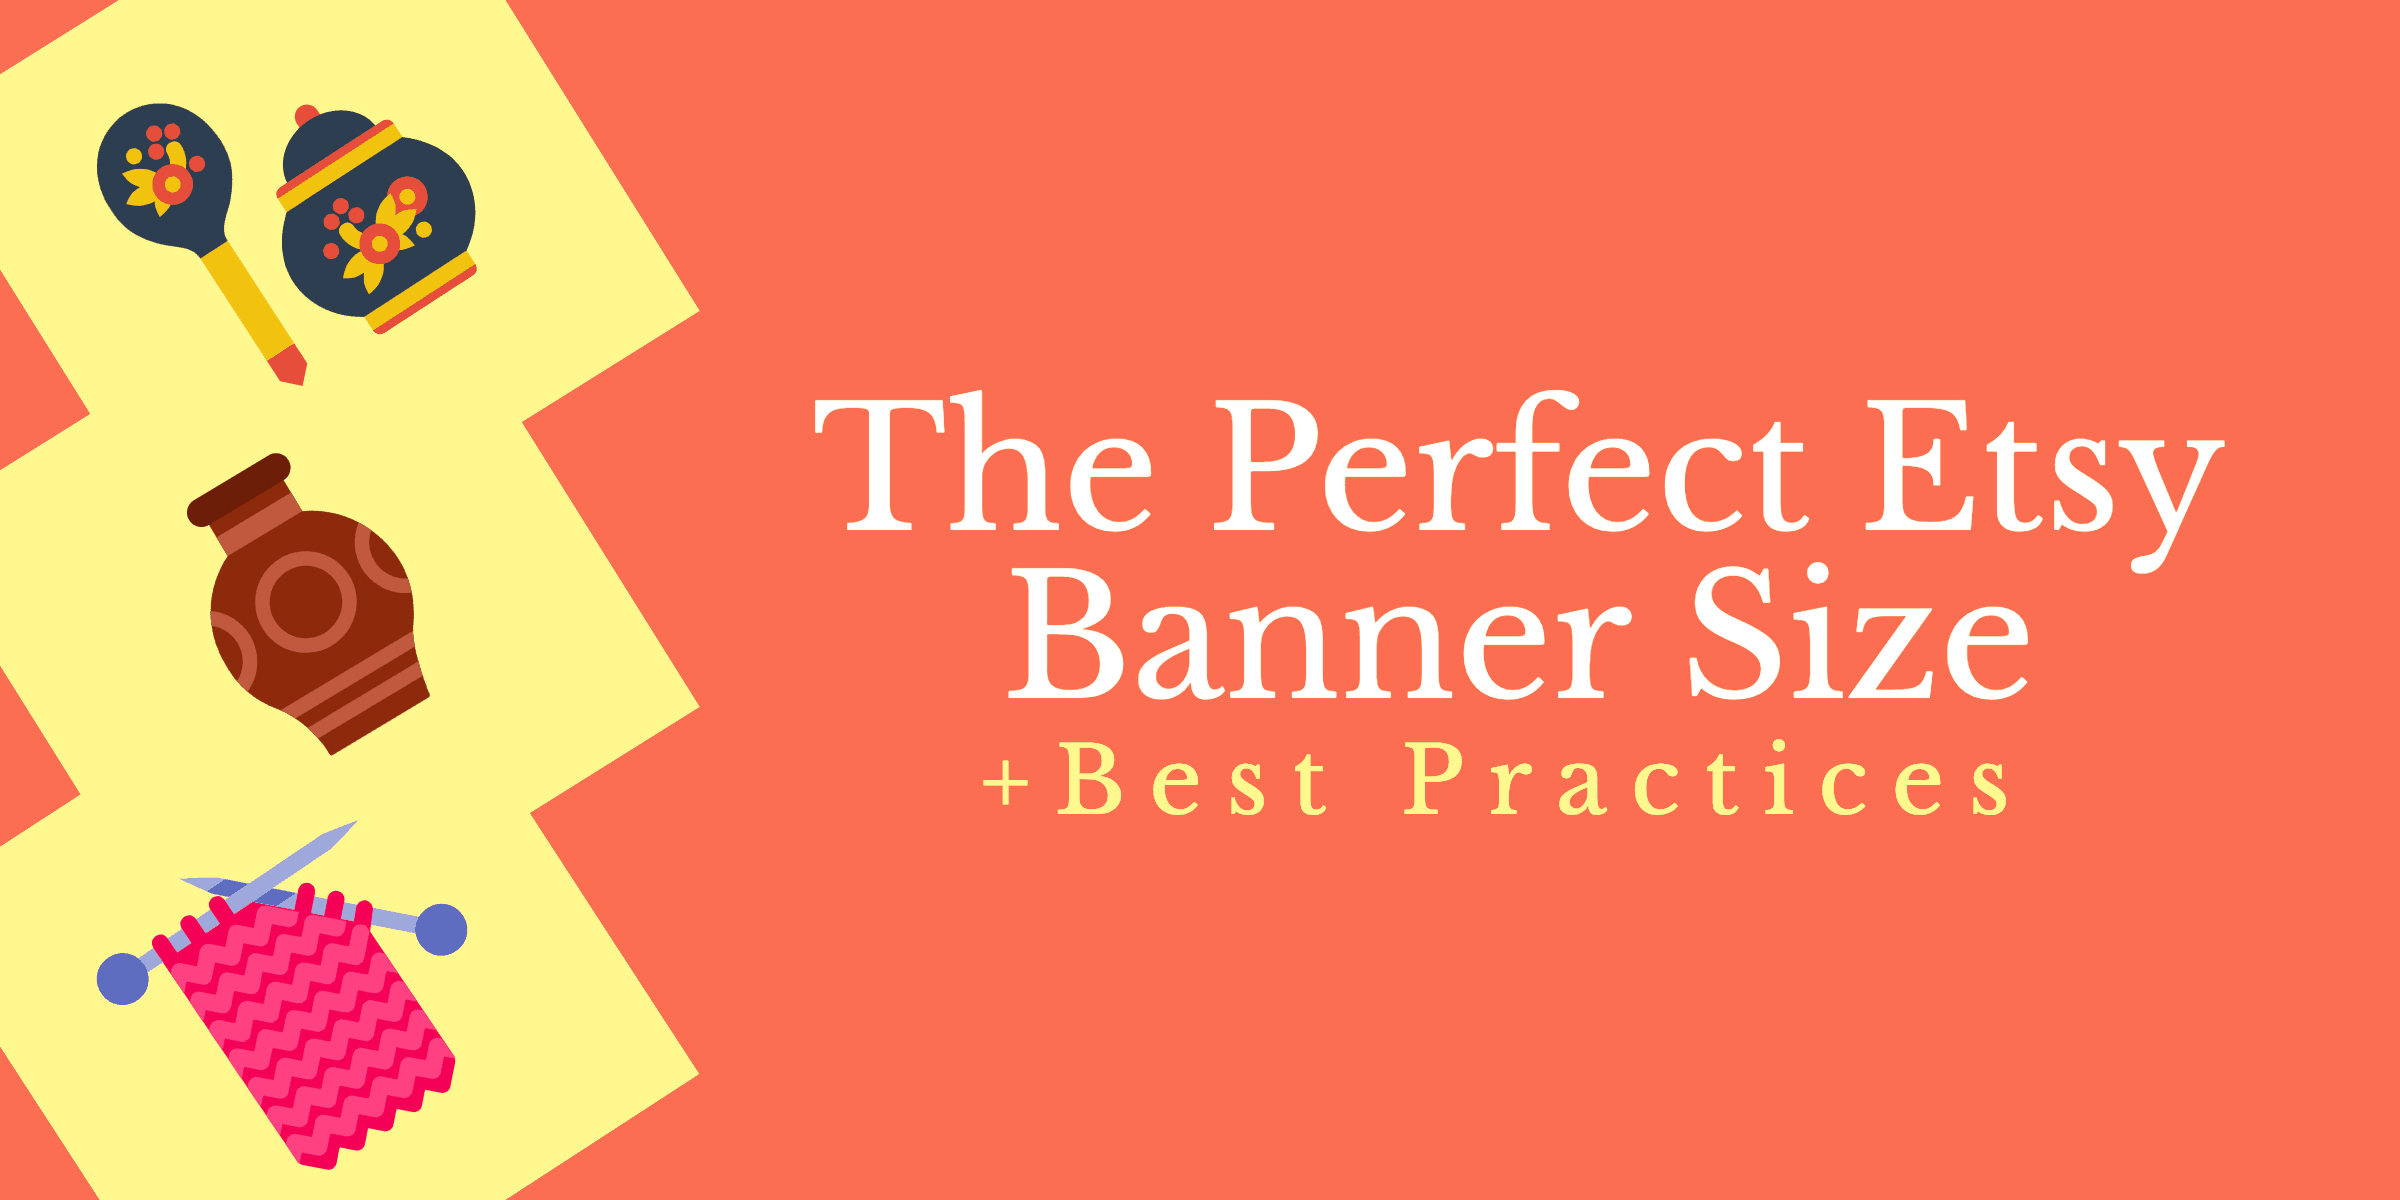 The Perfect Etsy Banner Size & Best Practices For Etsy Banner Template